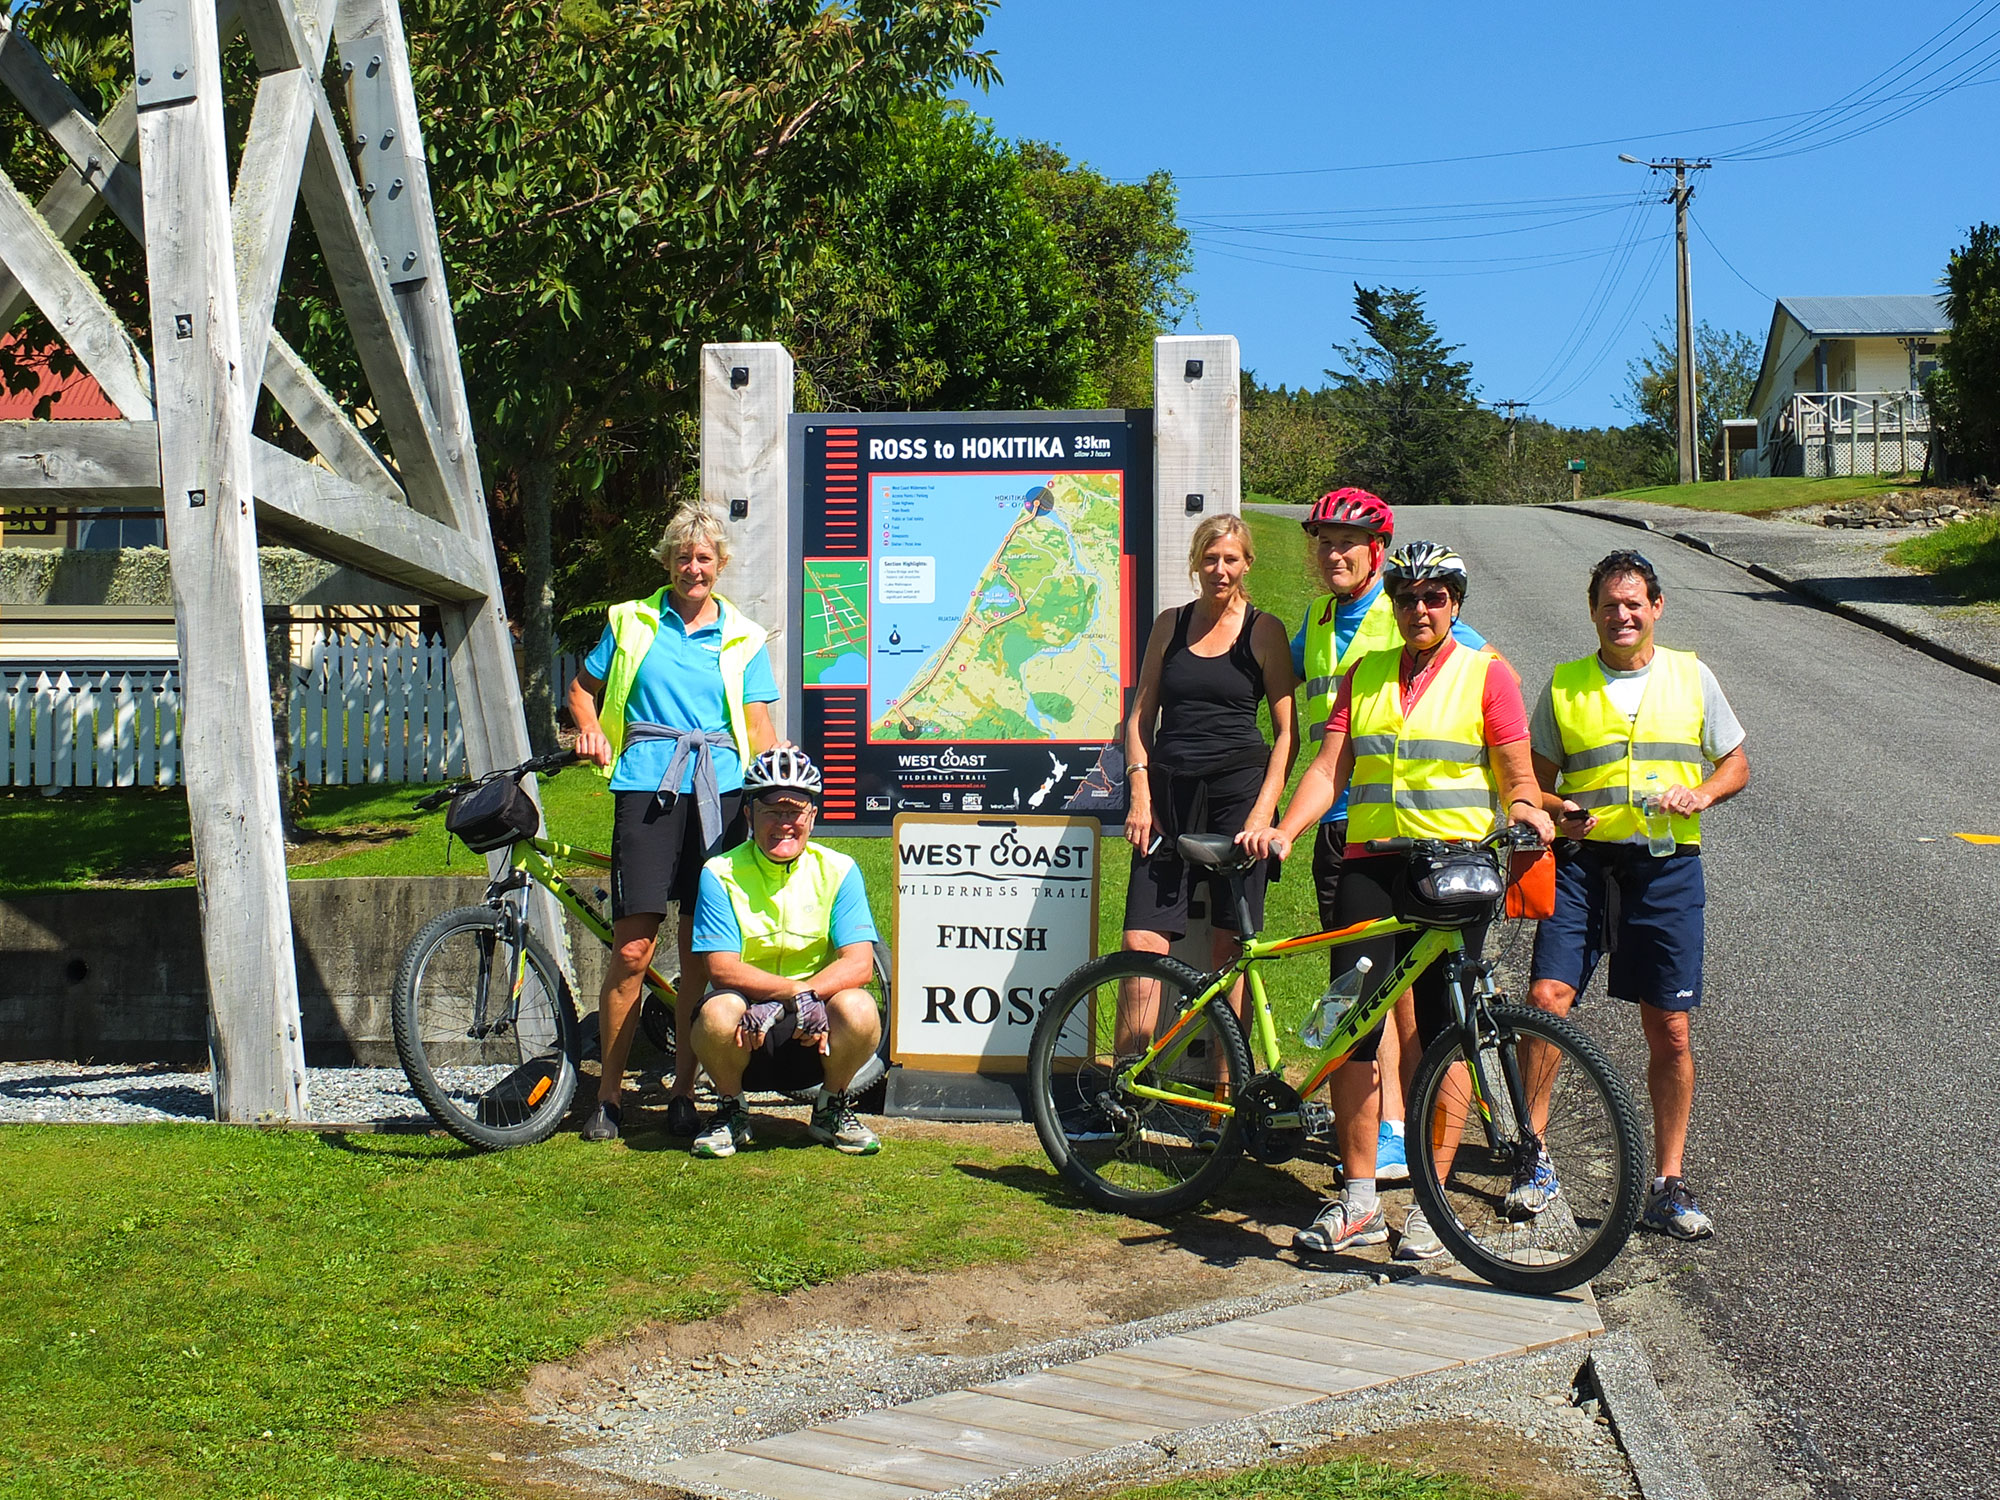 West Coast Wilderness Trail Cycle Tour